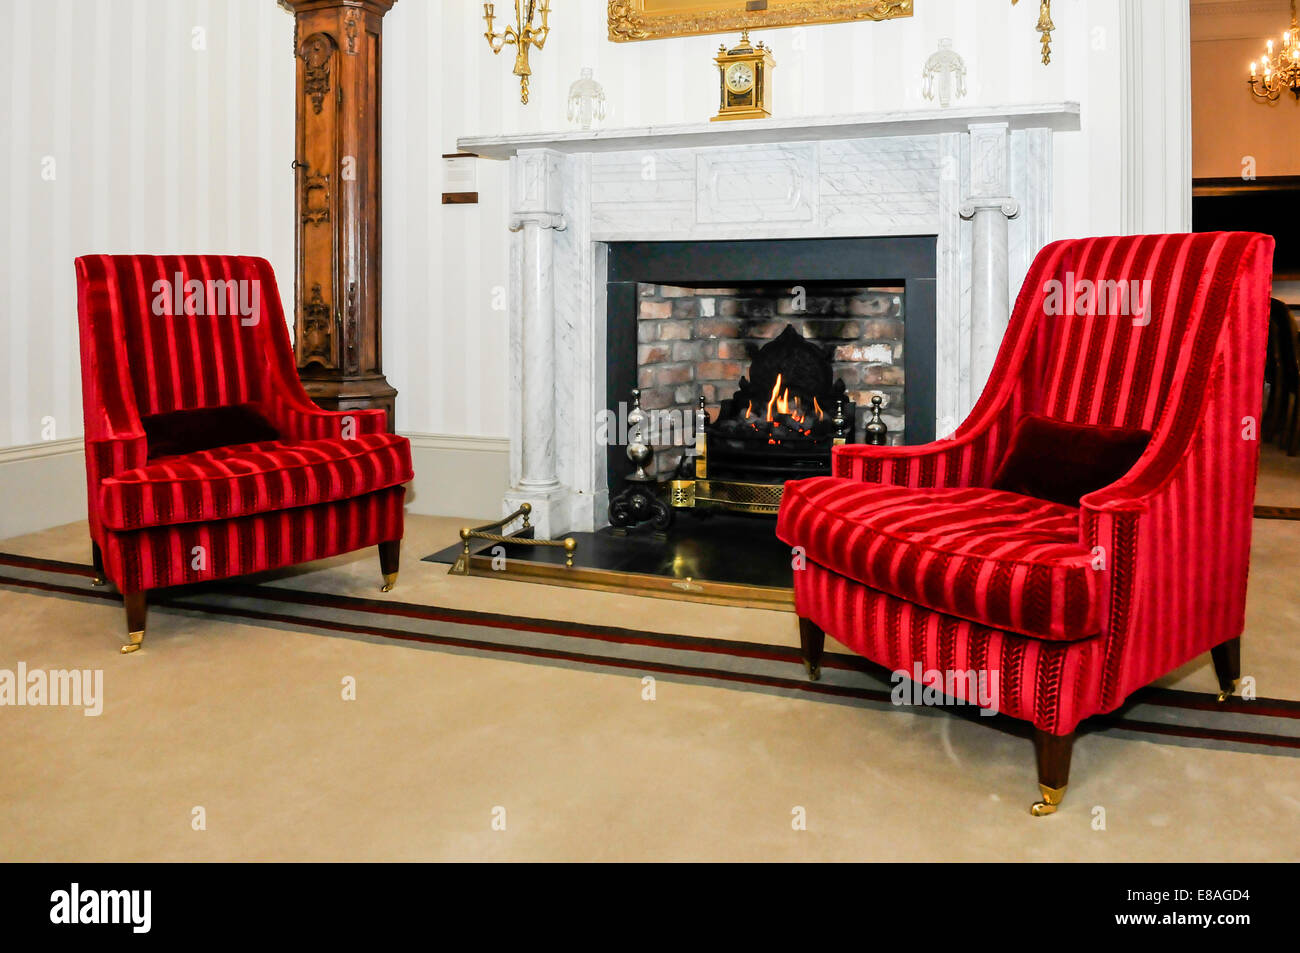 Two chairs beside a fireplace in a large, old fashioned house. - Stock Image